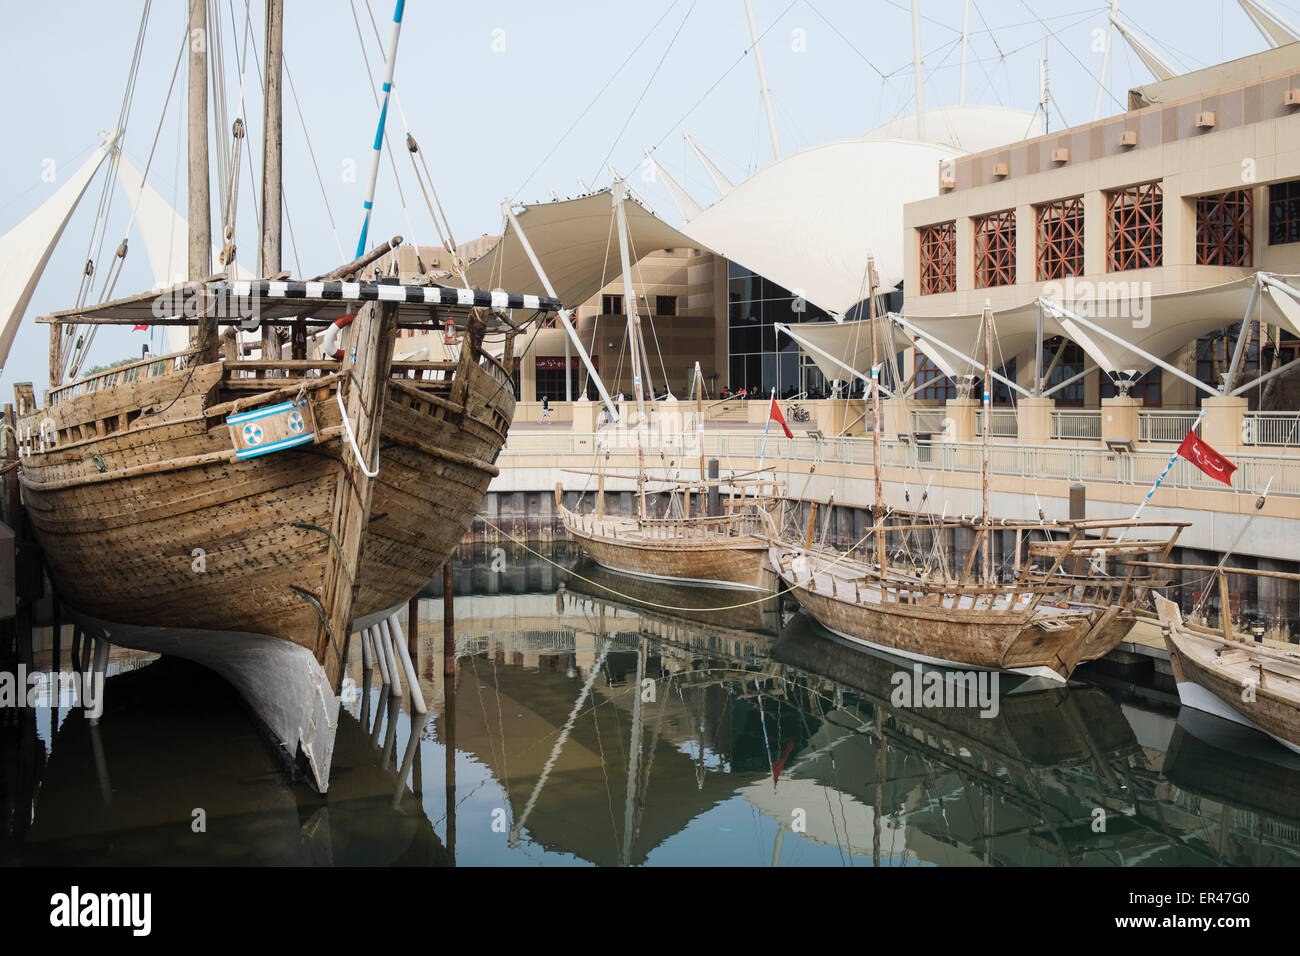 Dhow harbour at the Scientific Center in Kuwait City, Kuwait. - Stock Image